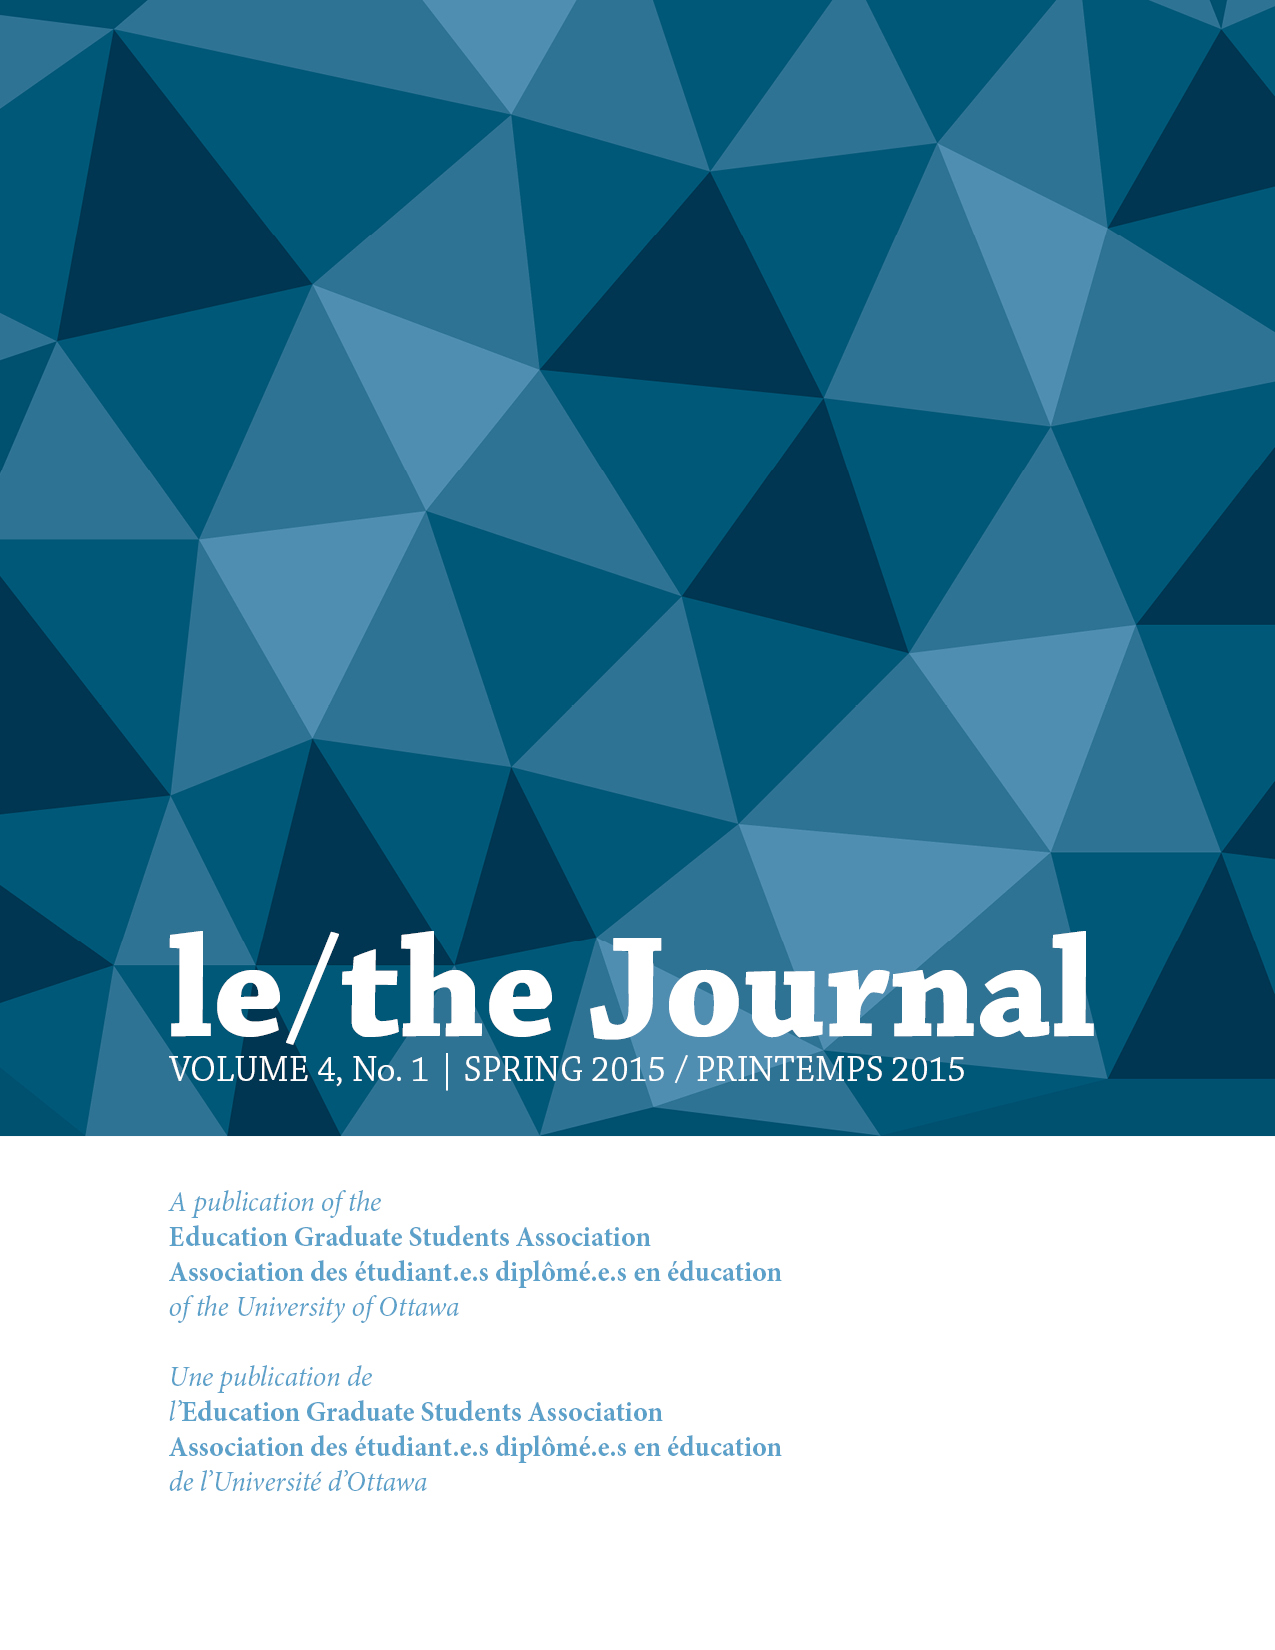 Journal_Cover_2015-10-14b_2